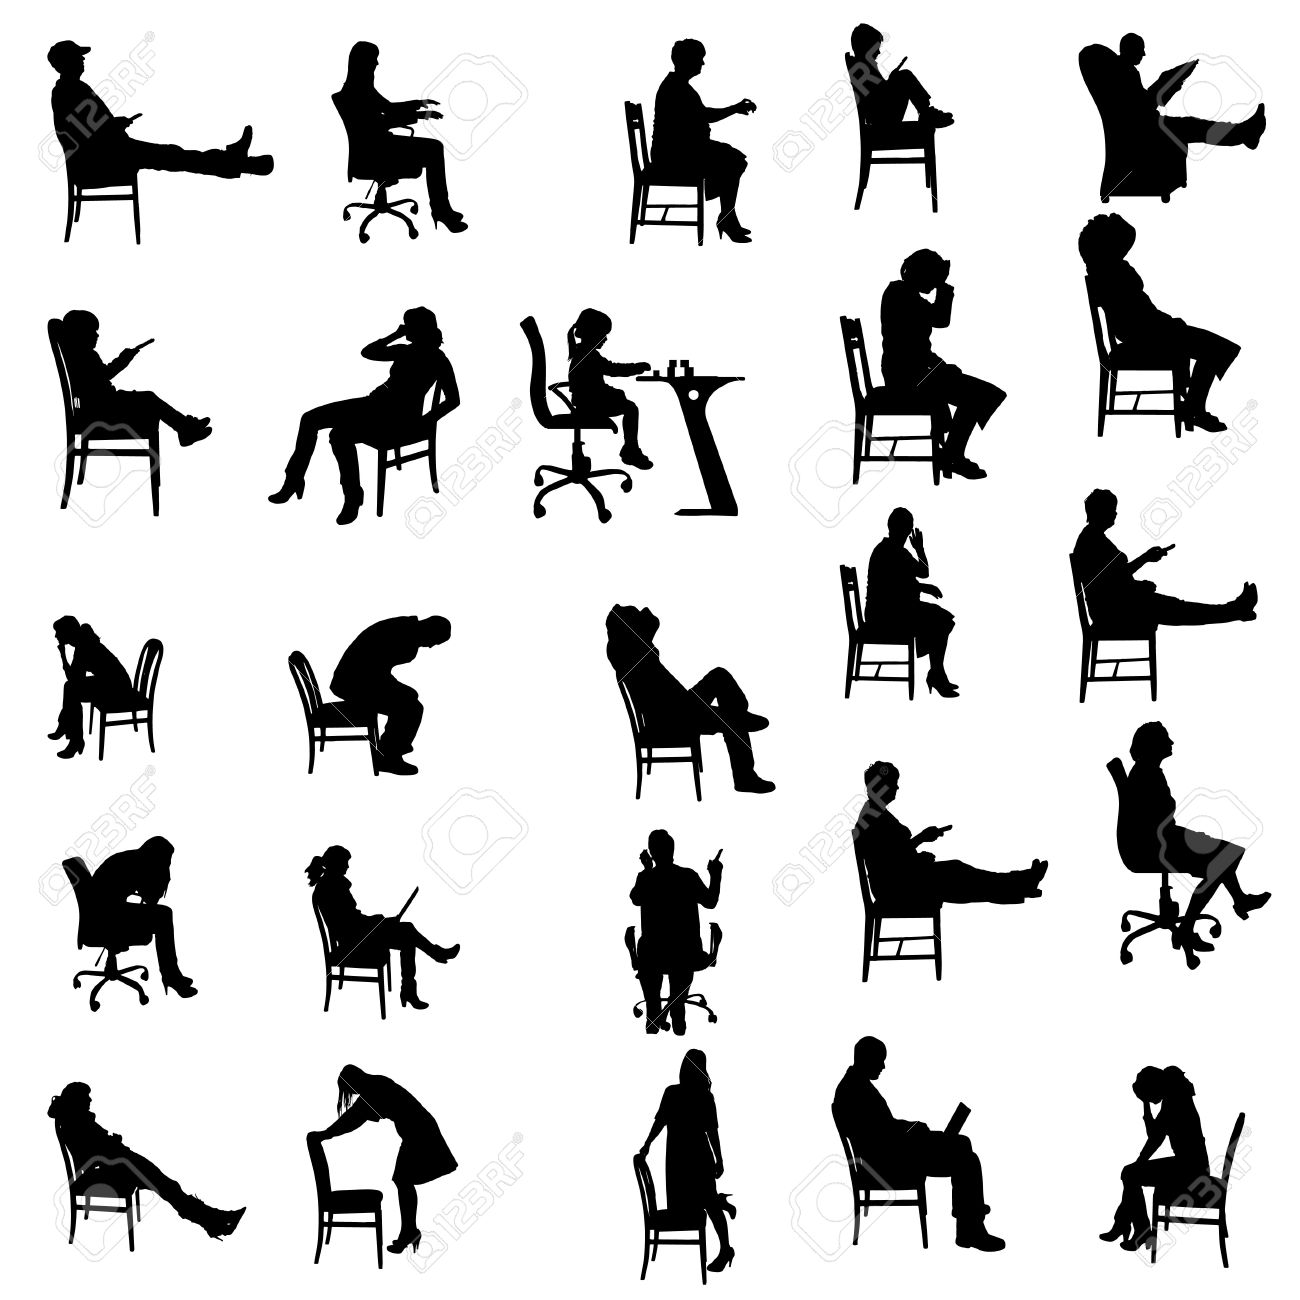 Vector Silhouettes Of People Sitting In A Chair. Royalty Free ...